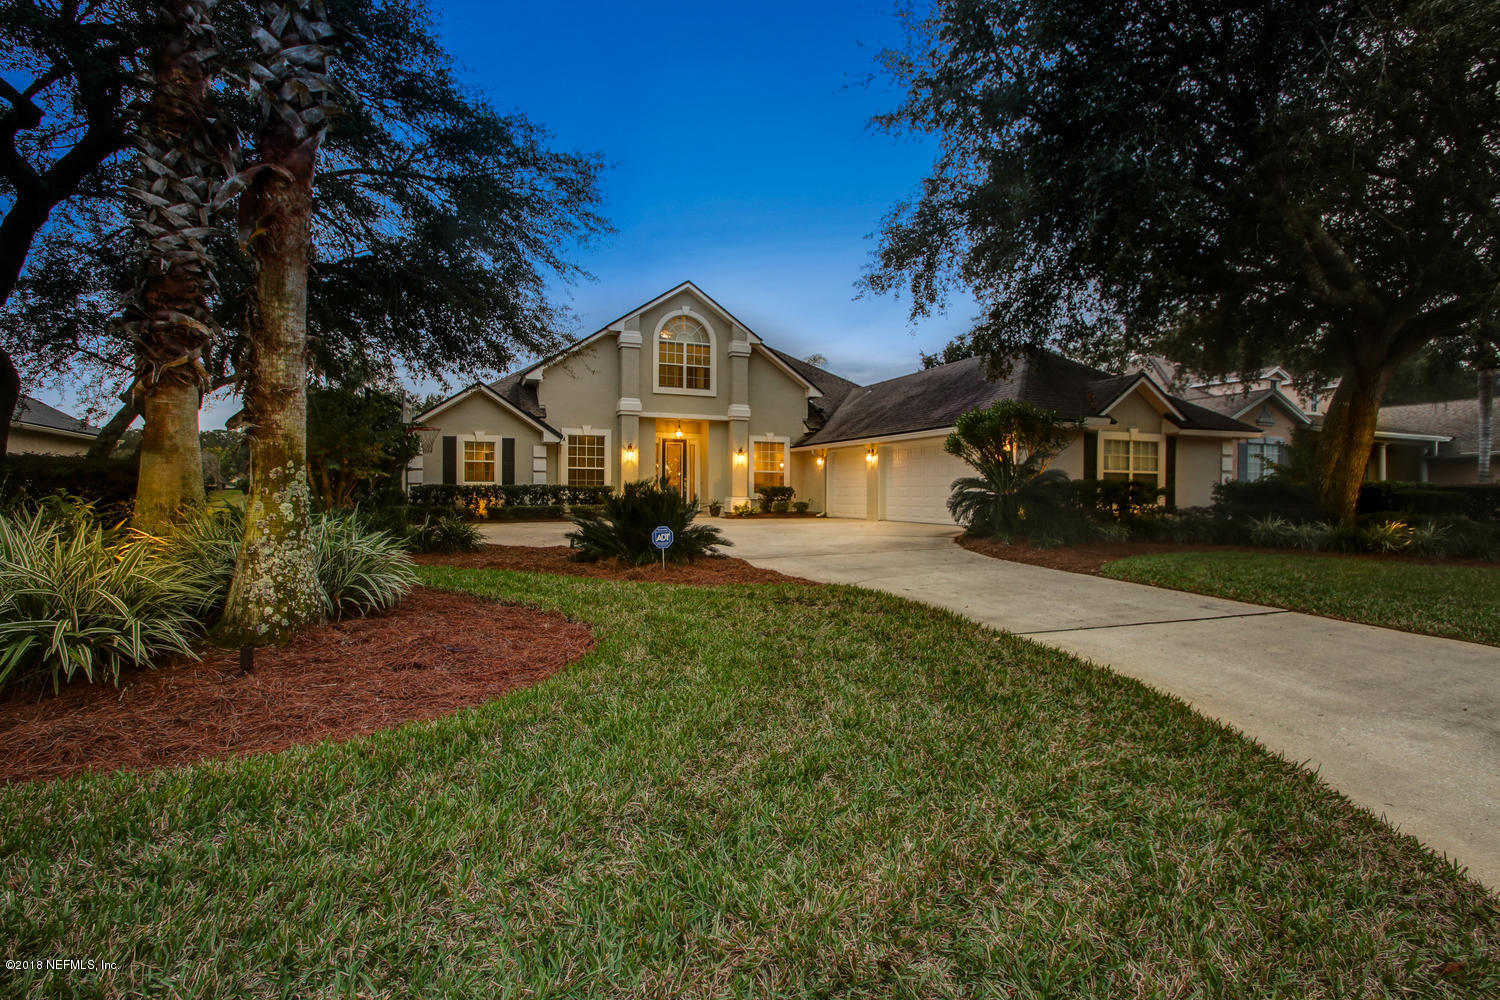 1261 N BURGANDY TRL, St Johns, Florida